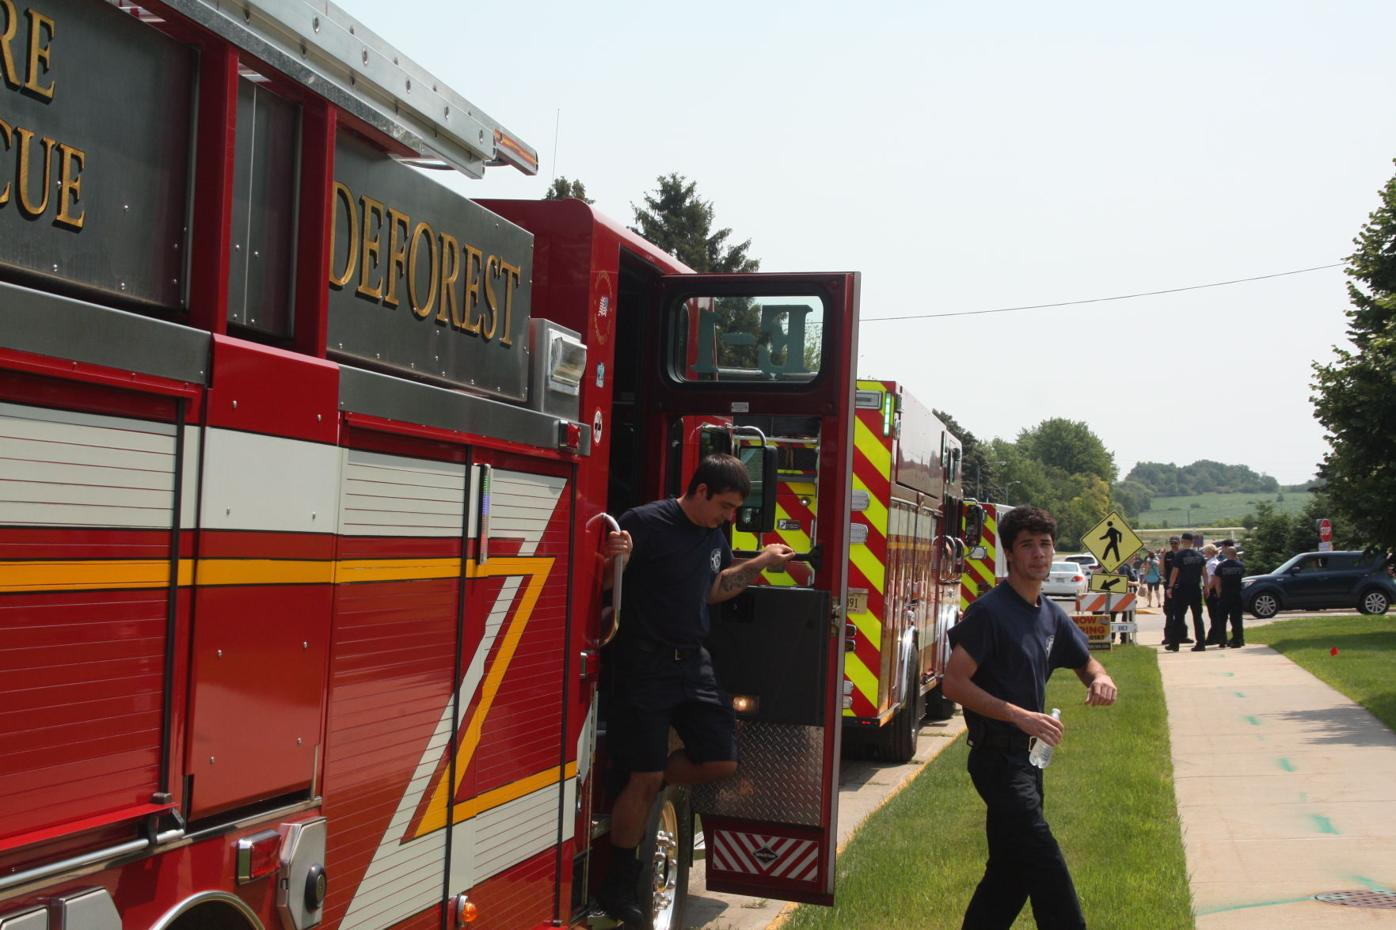 DeForest Fire Department with parade first responders